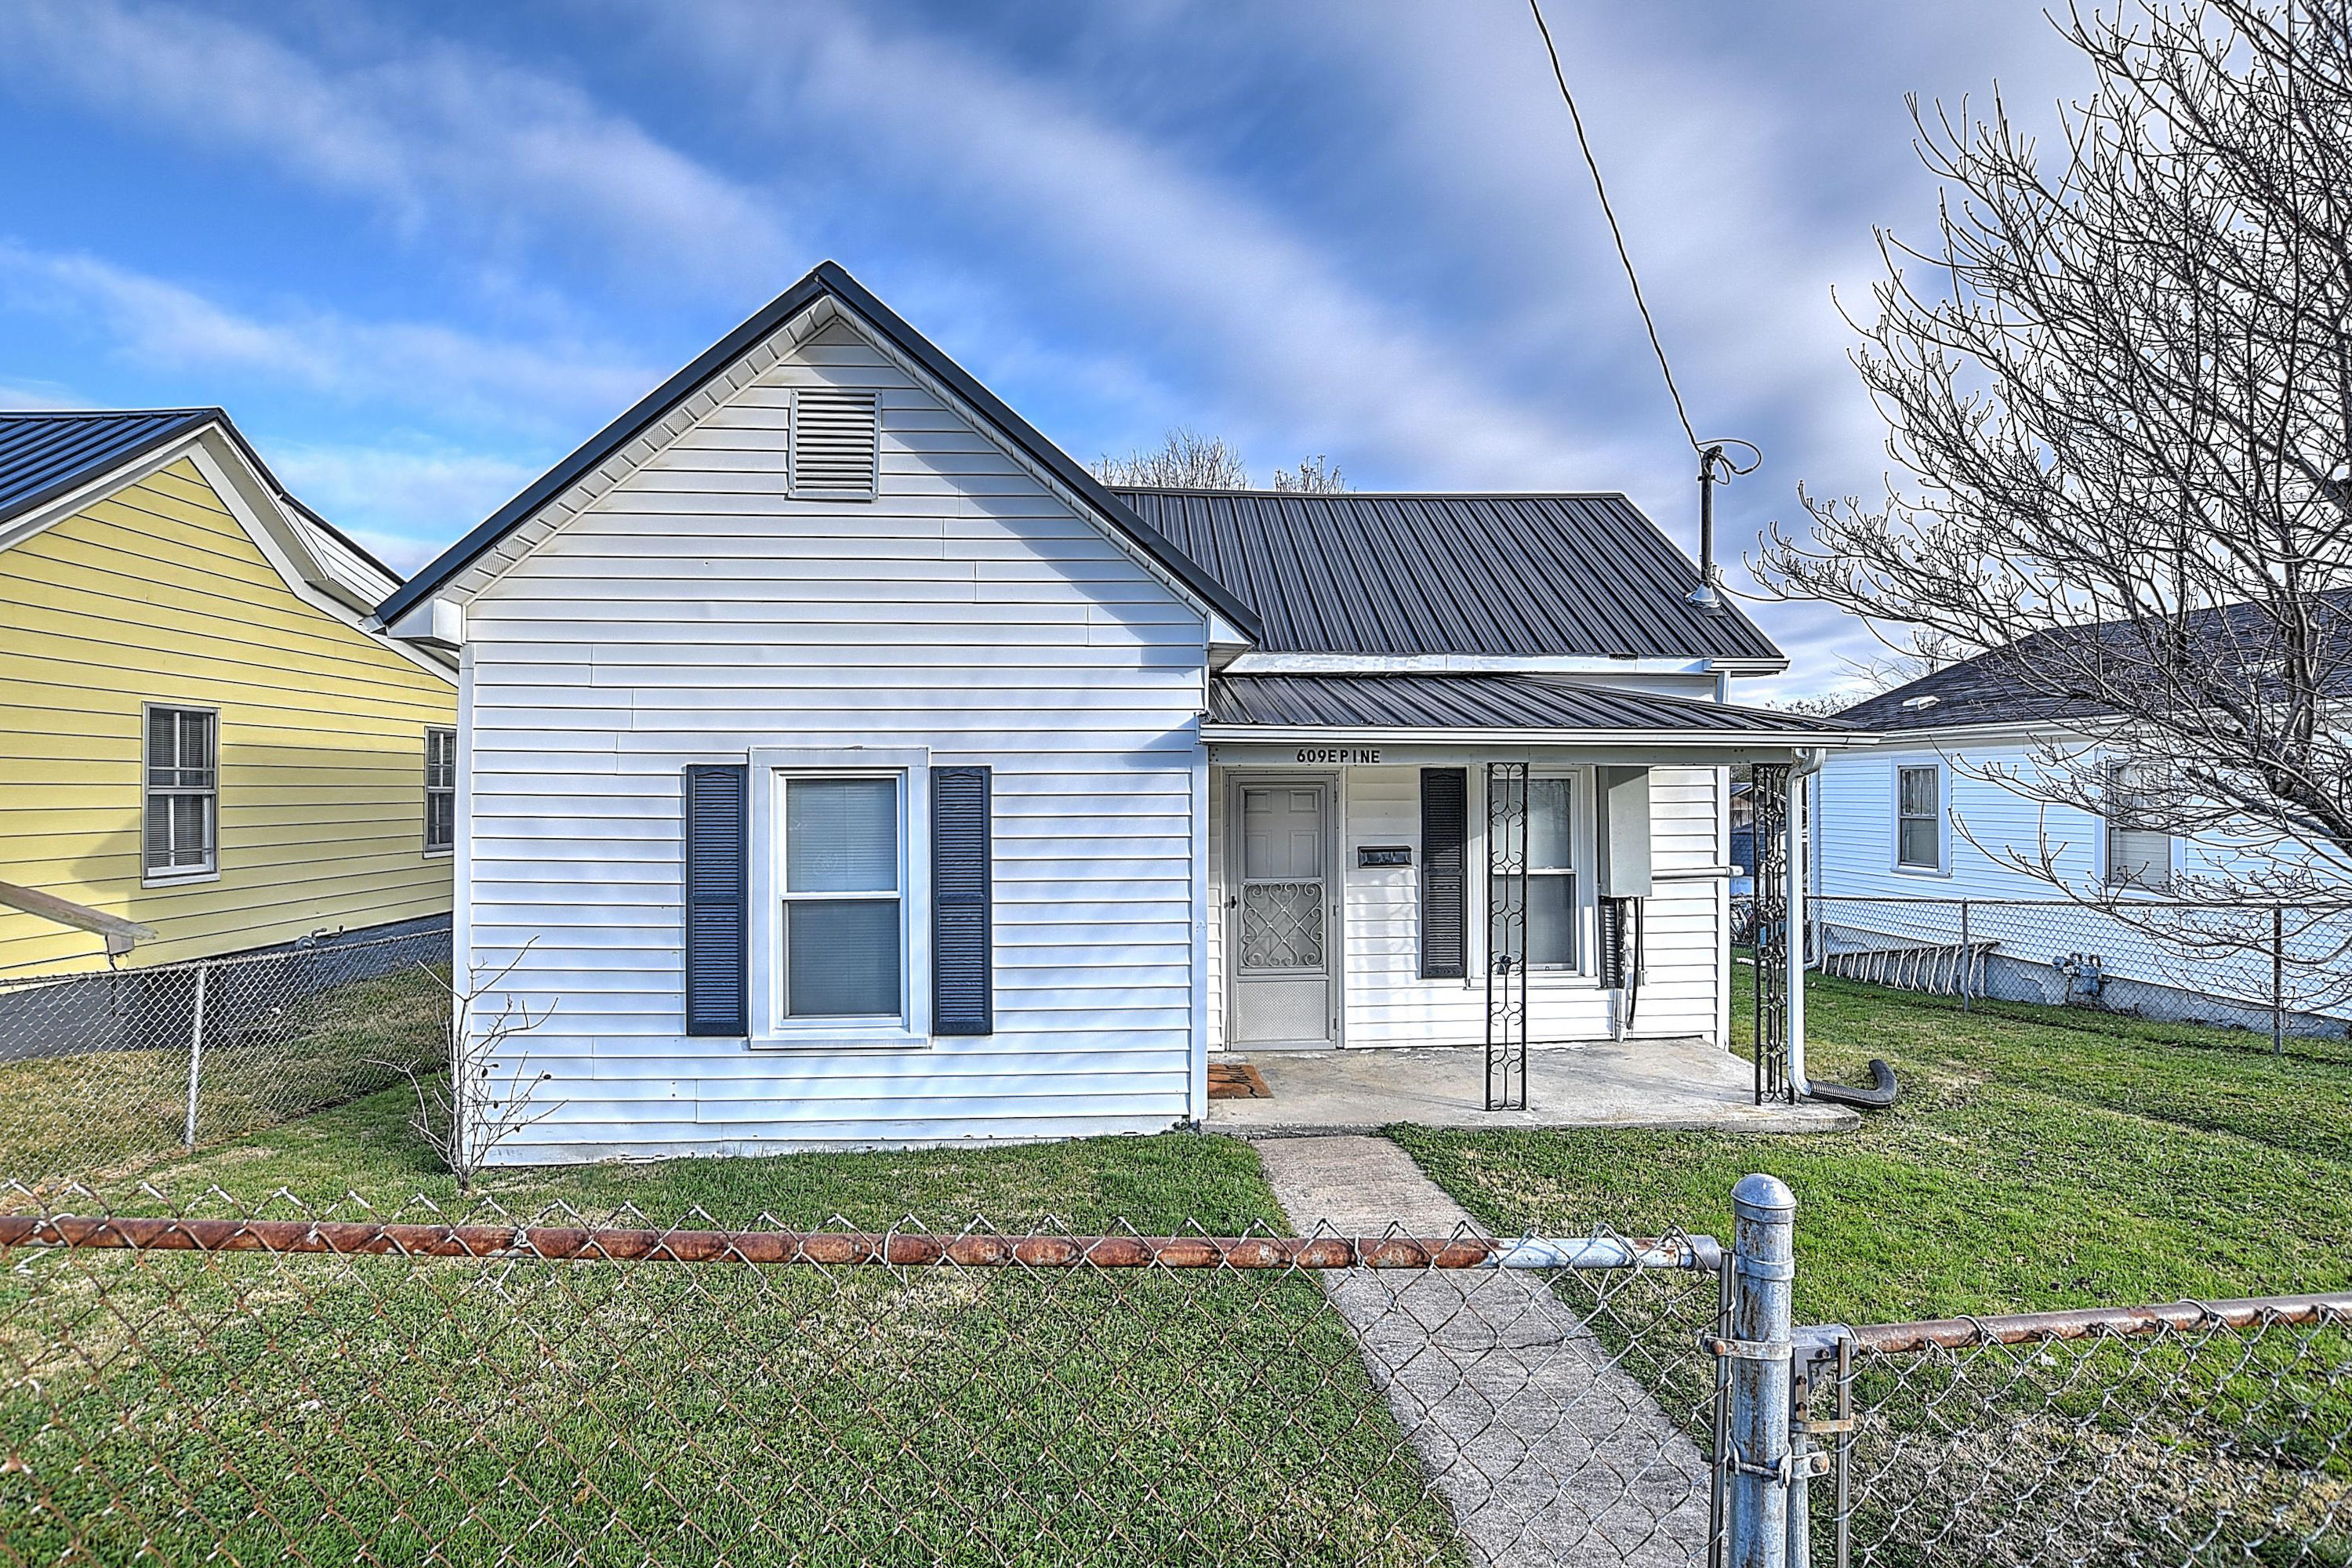 609 East Pine Street, Johnson City, Tennessee 37601, 2 Bedrooms Bedrooms, ,1 BathroomBathrooms,Single Family,For Sale,609 East Pine Street,9916947